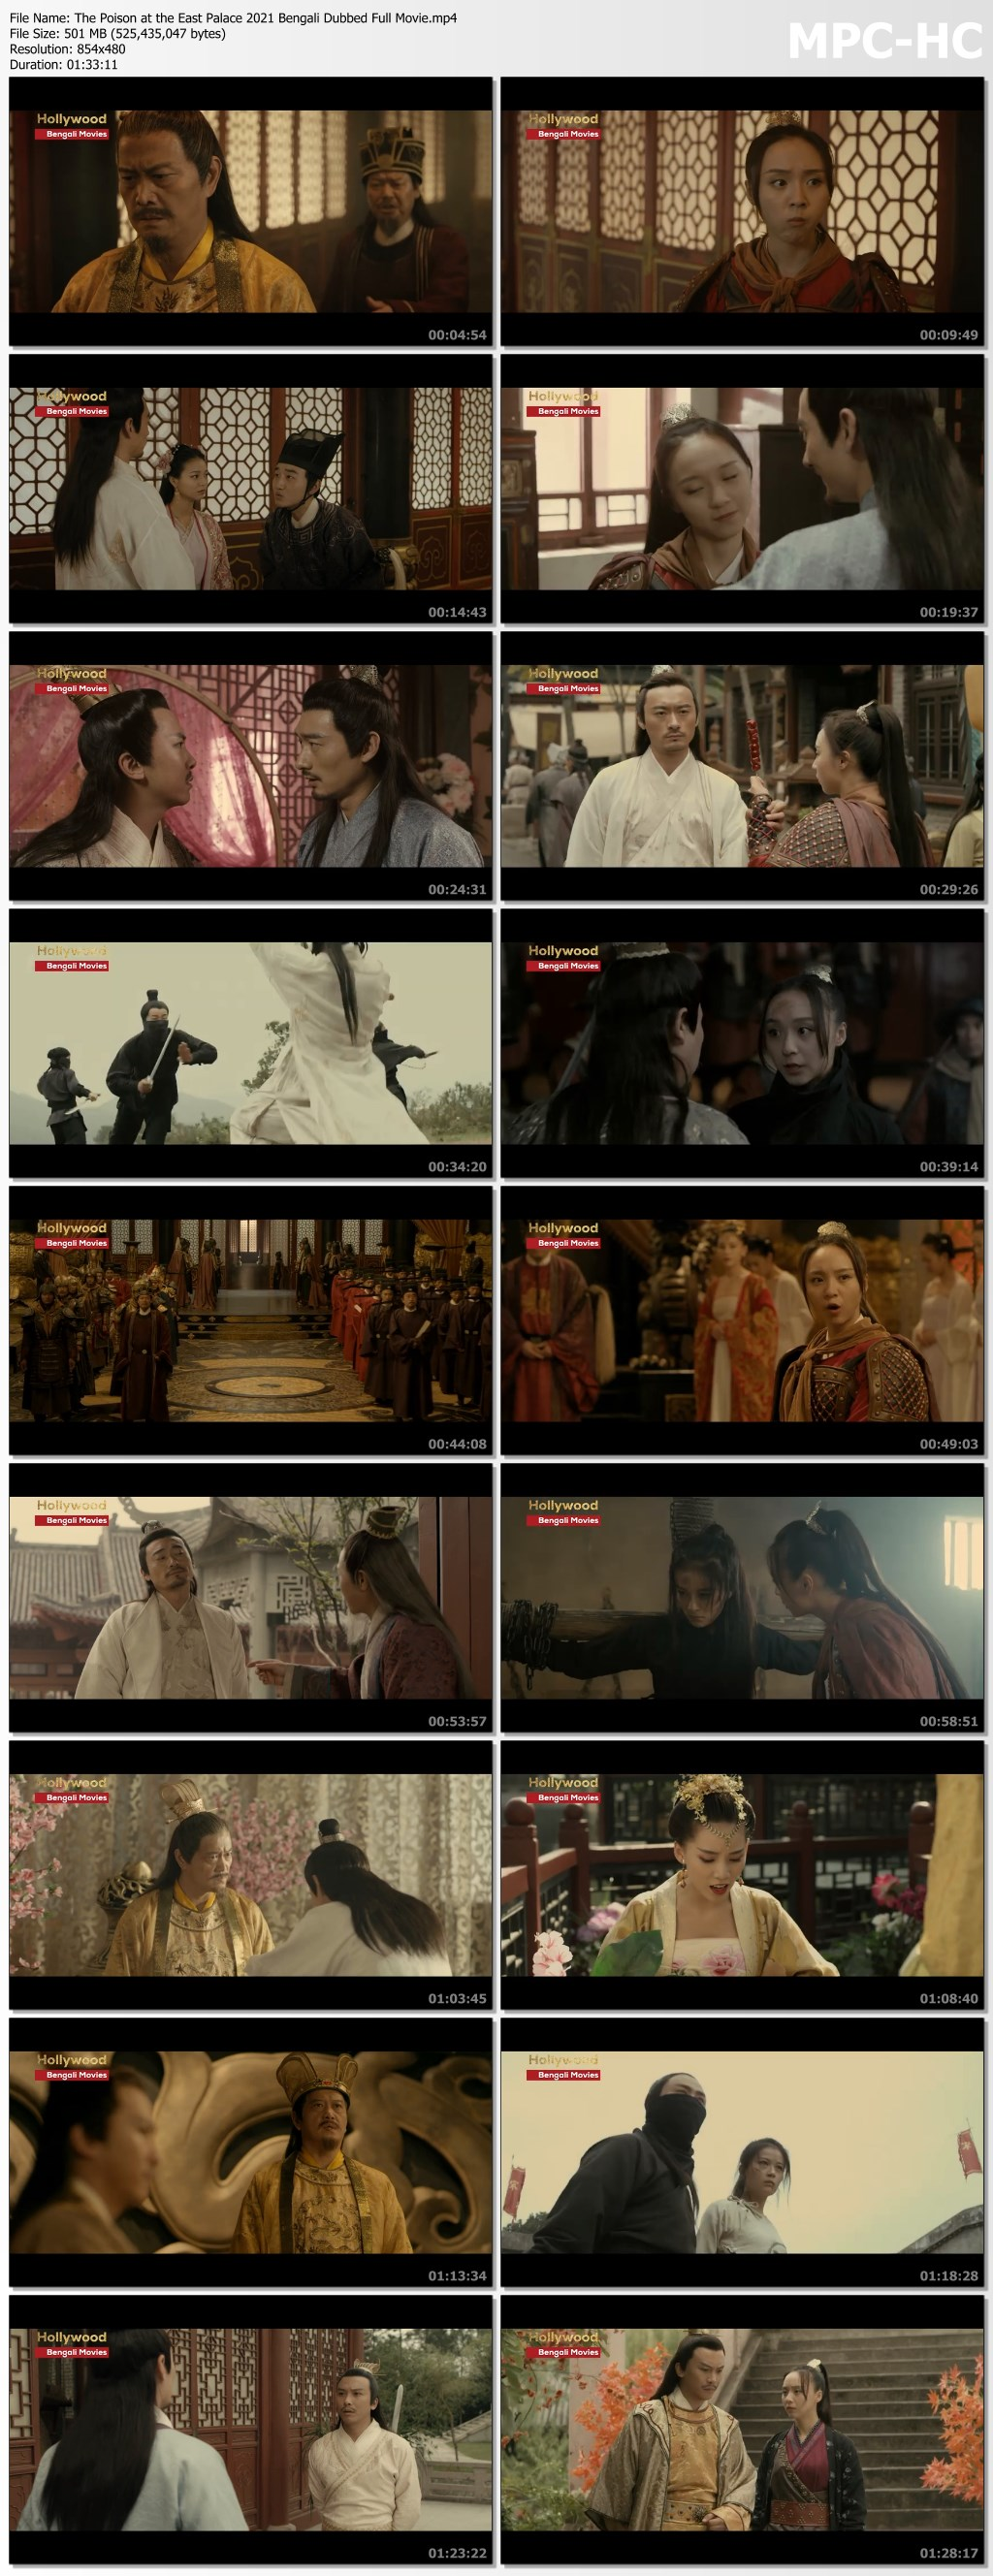 The Poison at the East Palace 2021 Bengali Dubbed Full Movie.mp4 thumbs